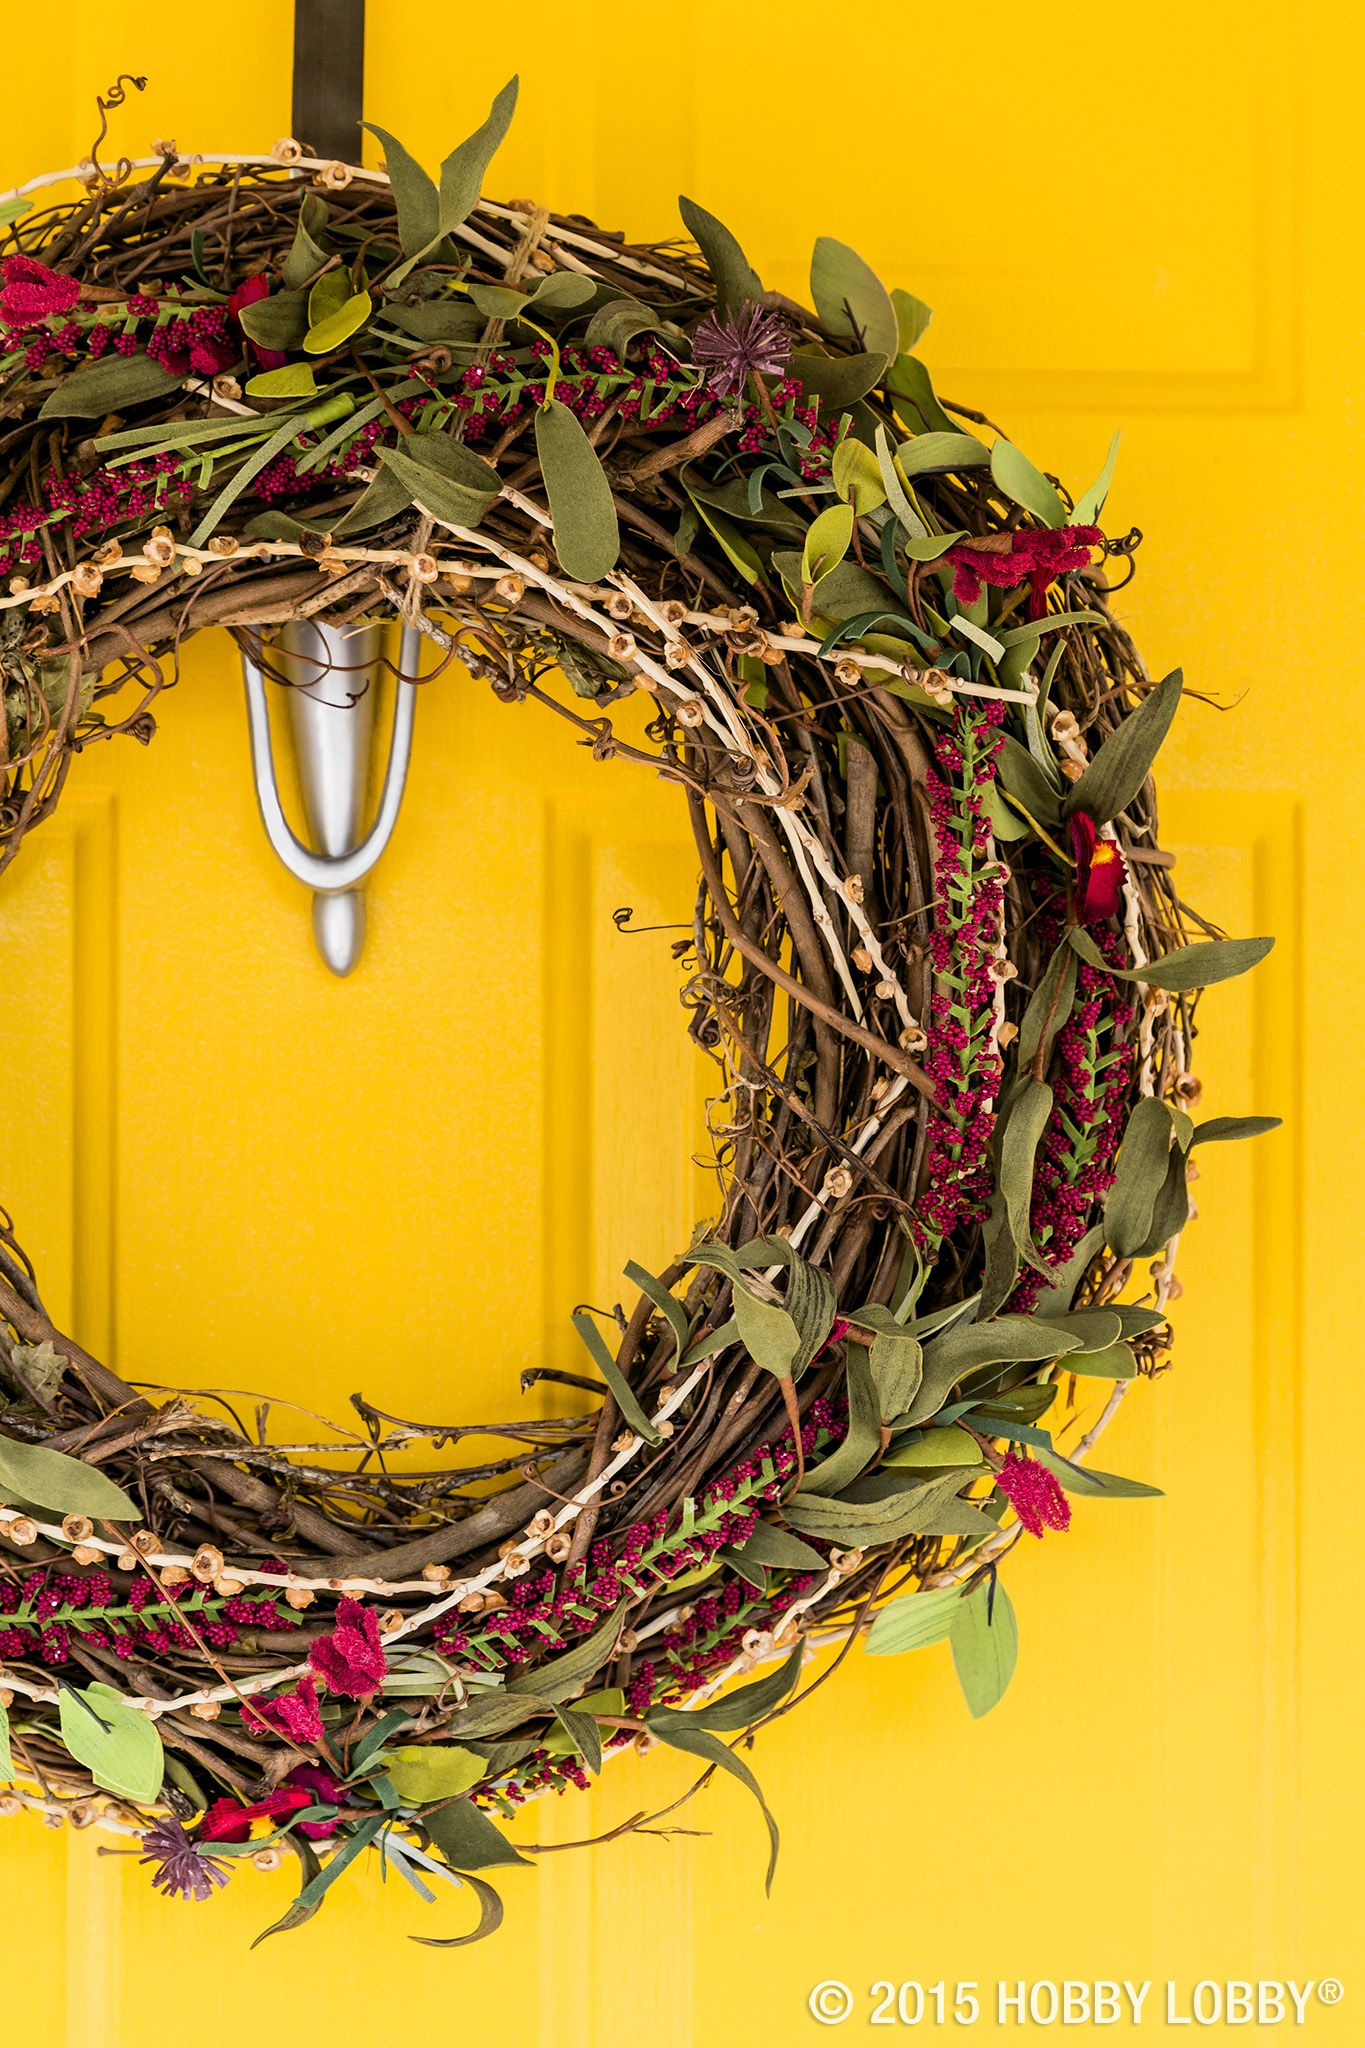 Grapevine Wreaths With Their Quick Change Capabilities Are Ideal For Seasonal Decor When The Air Gets Crisp Tuck In A Few Faux Diy Wreath Crafts Fall Wreaths